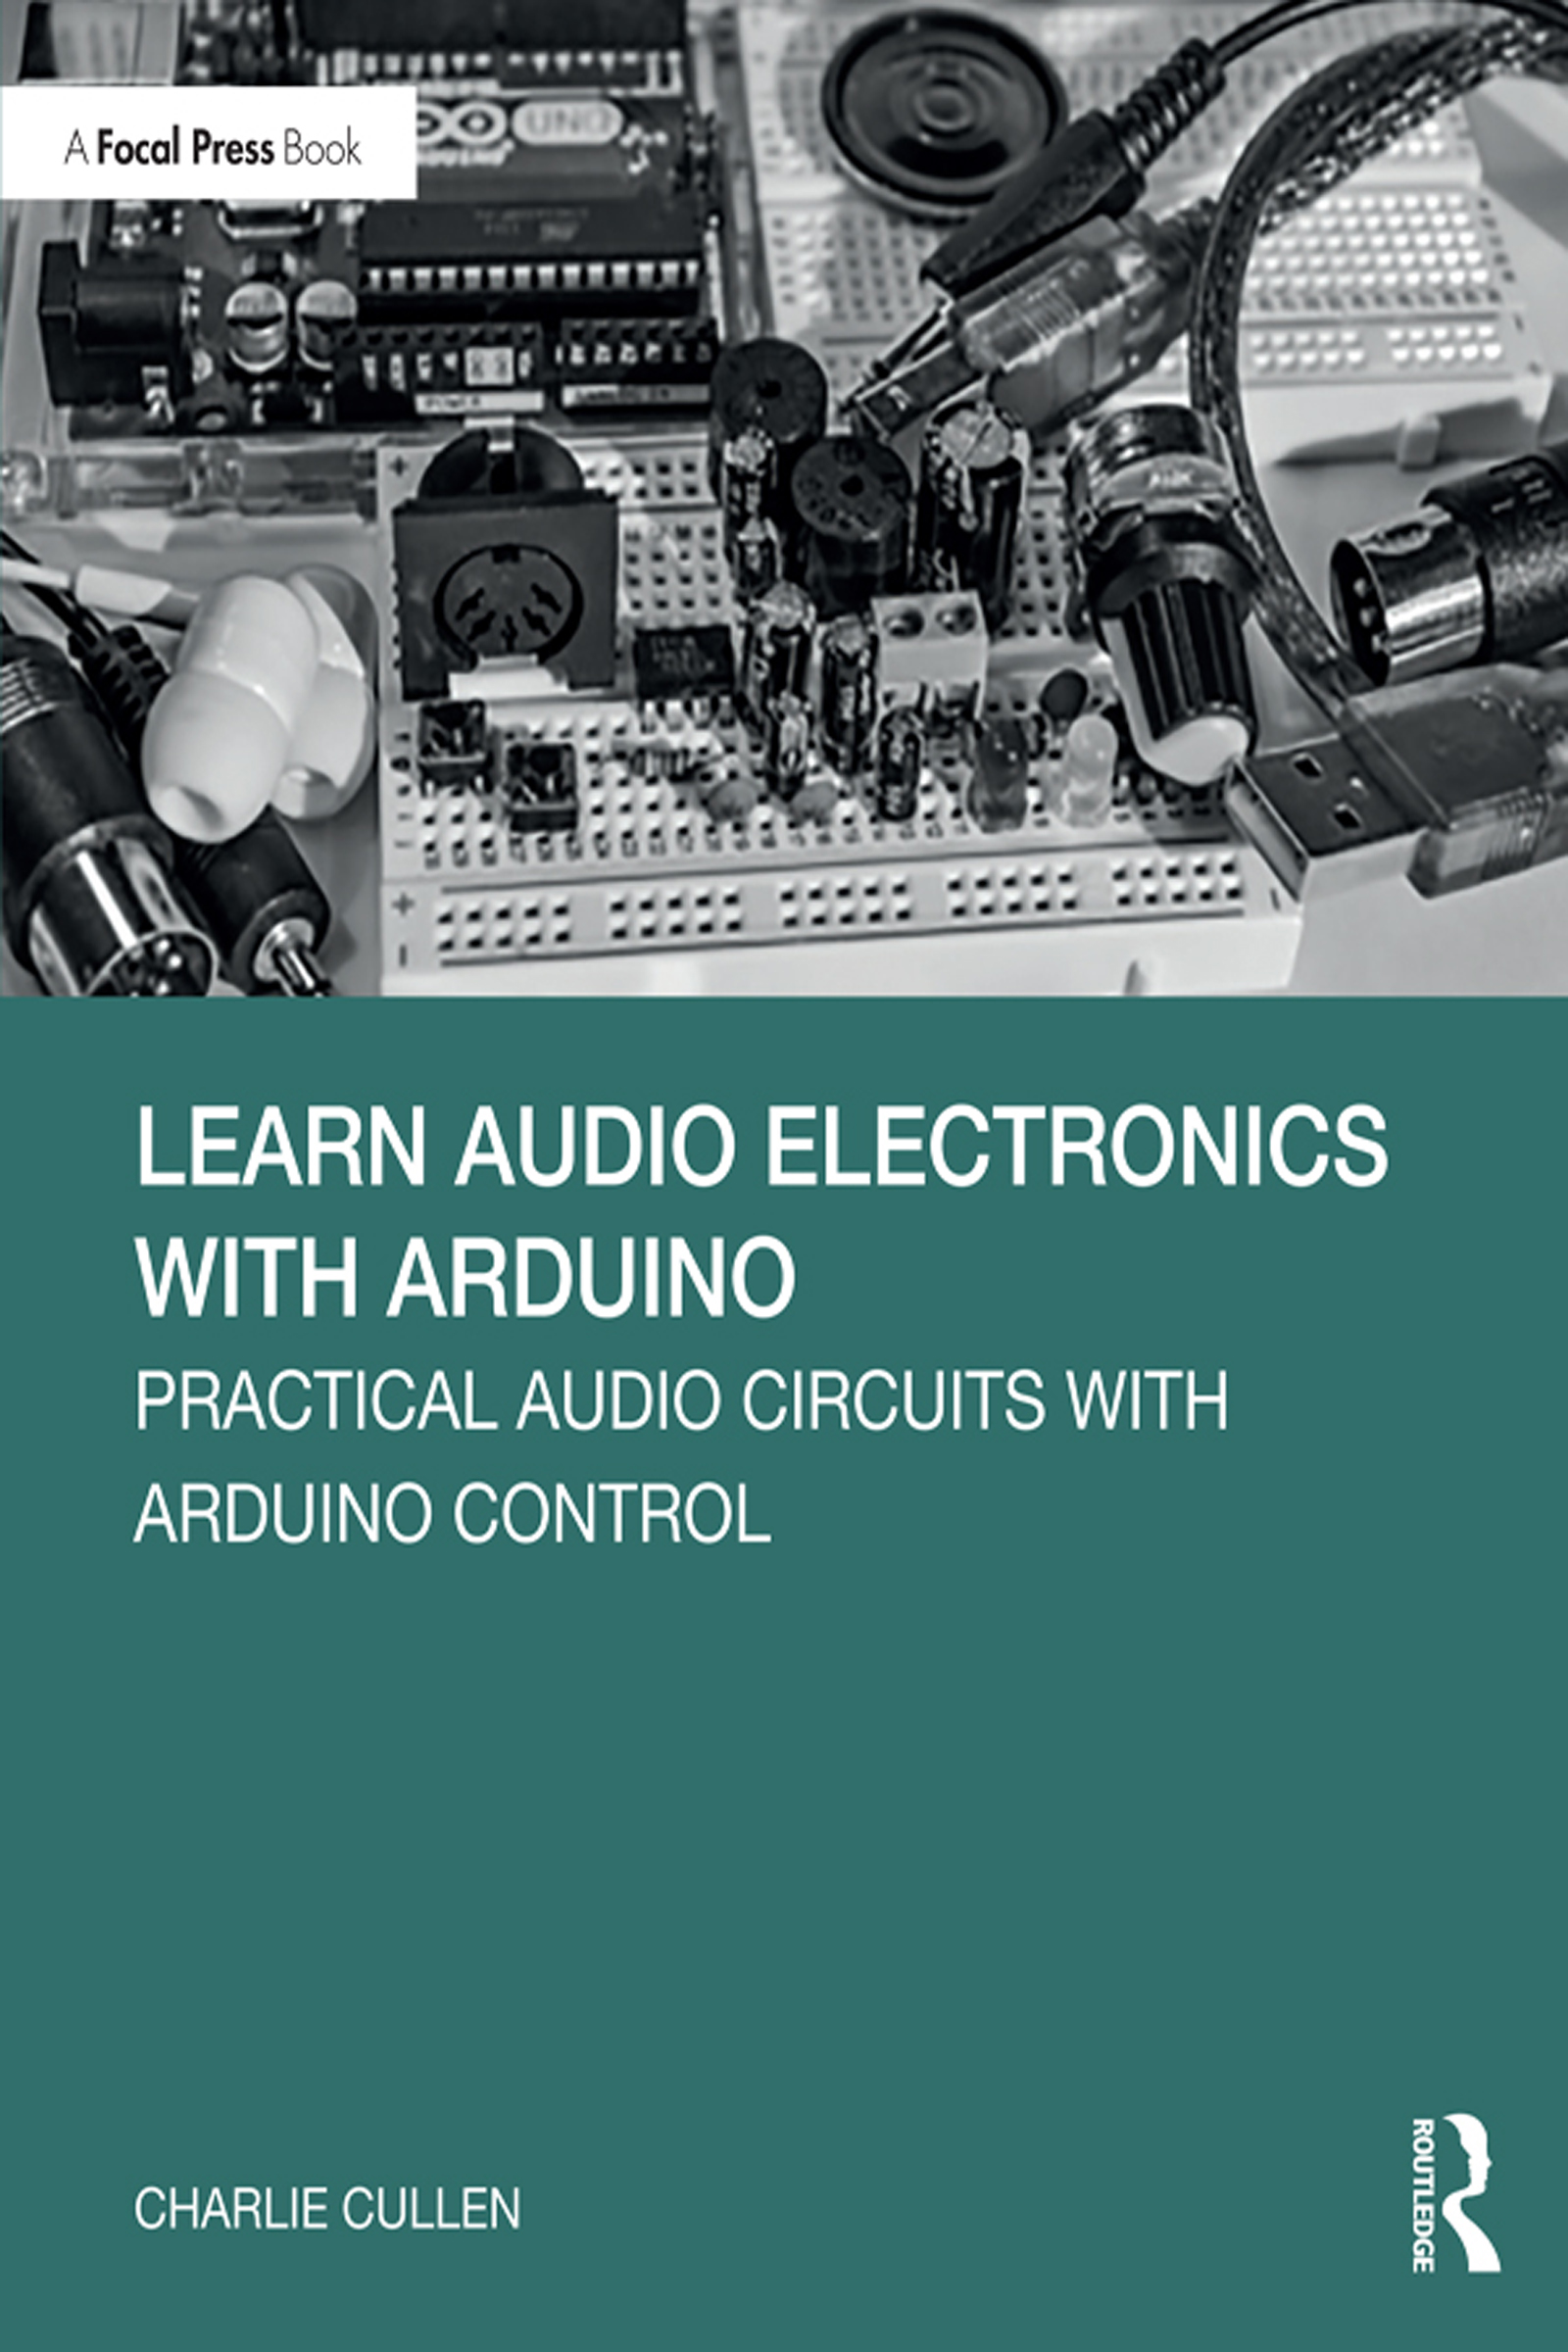 Learn Audio Electronics with Arduino: Practical Audio Circuits with Arduino Control book cover